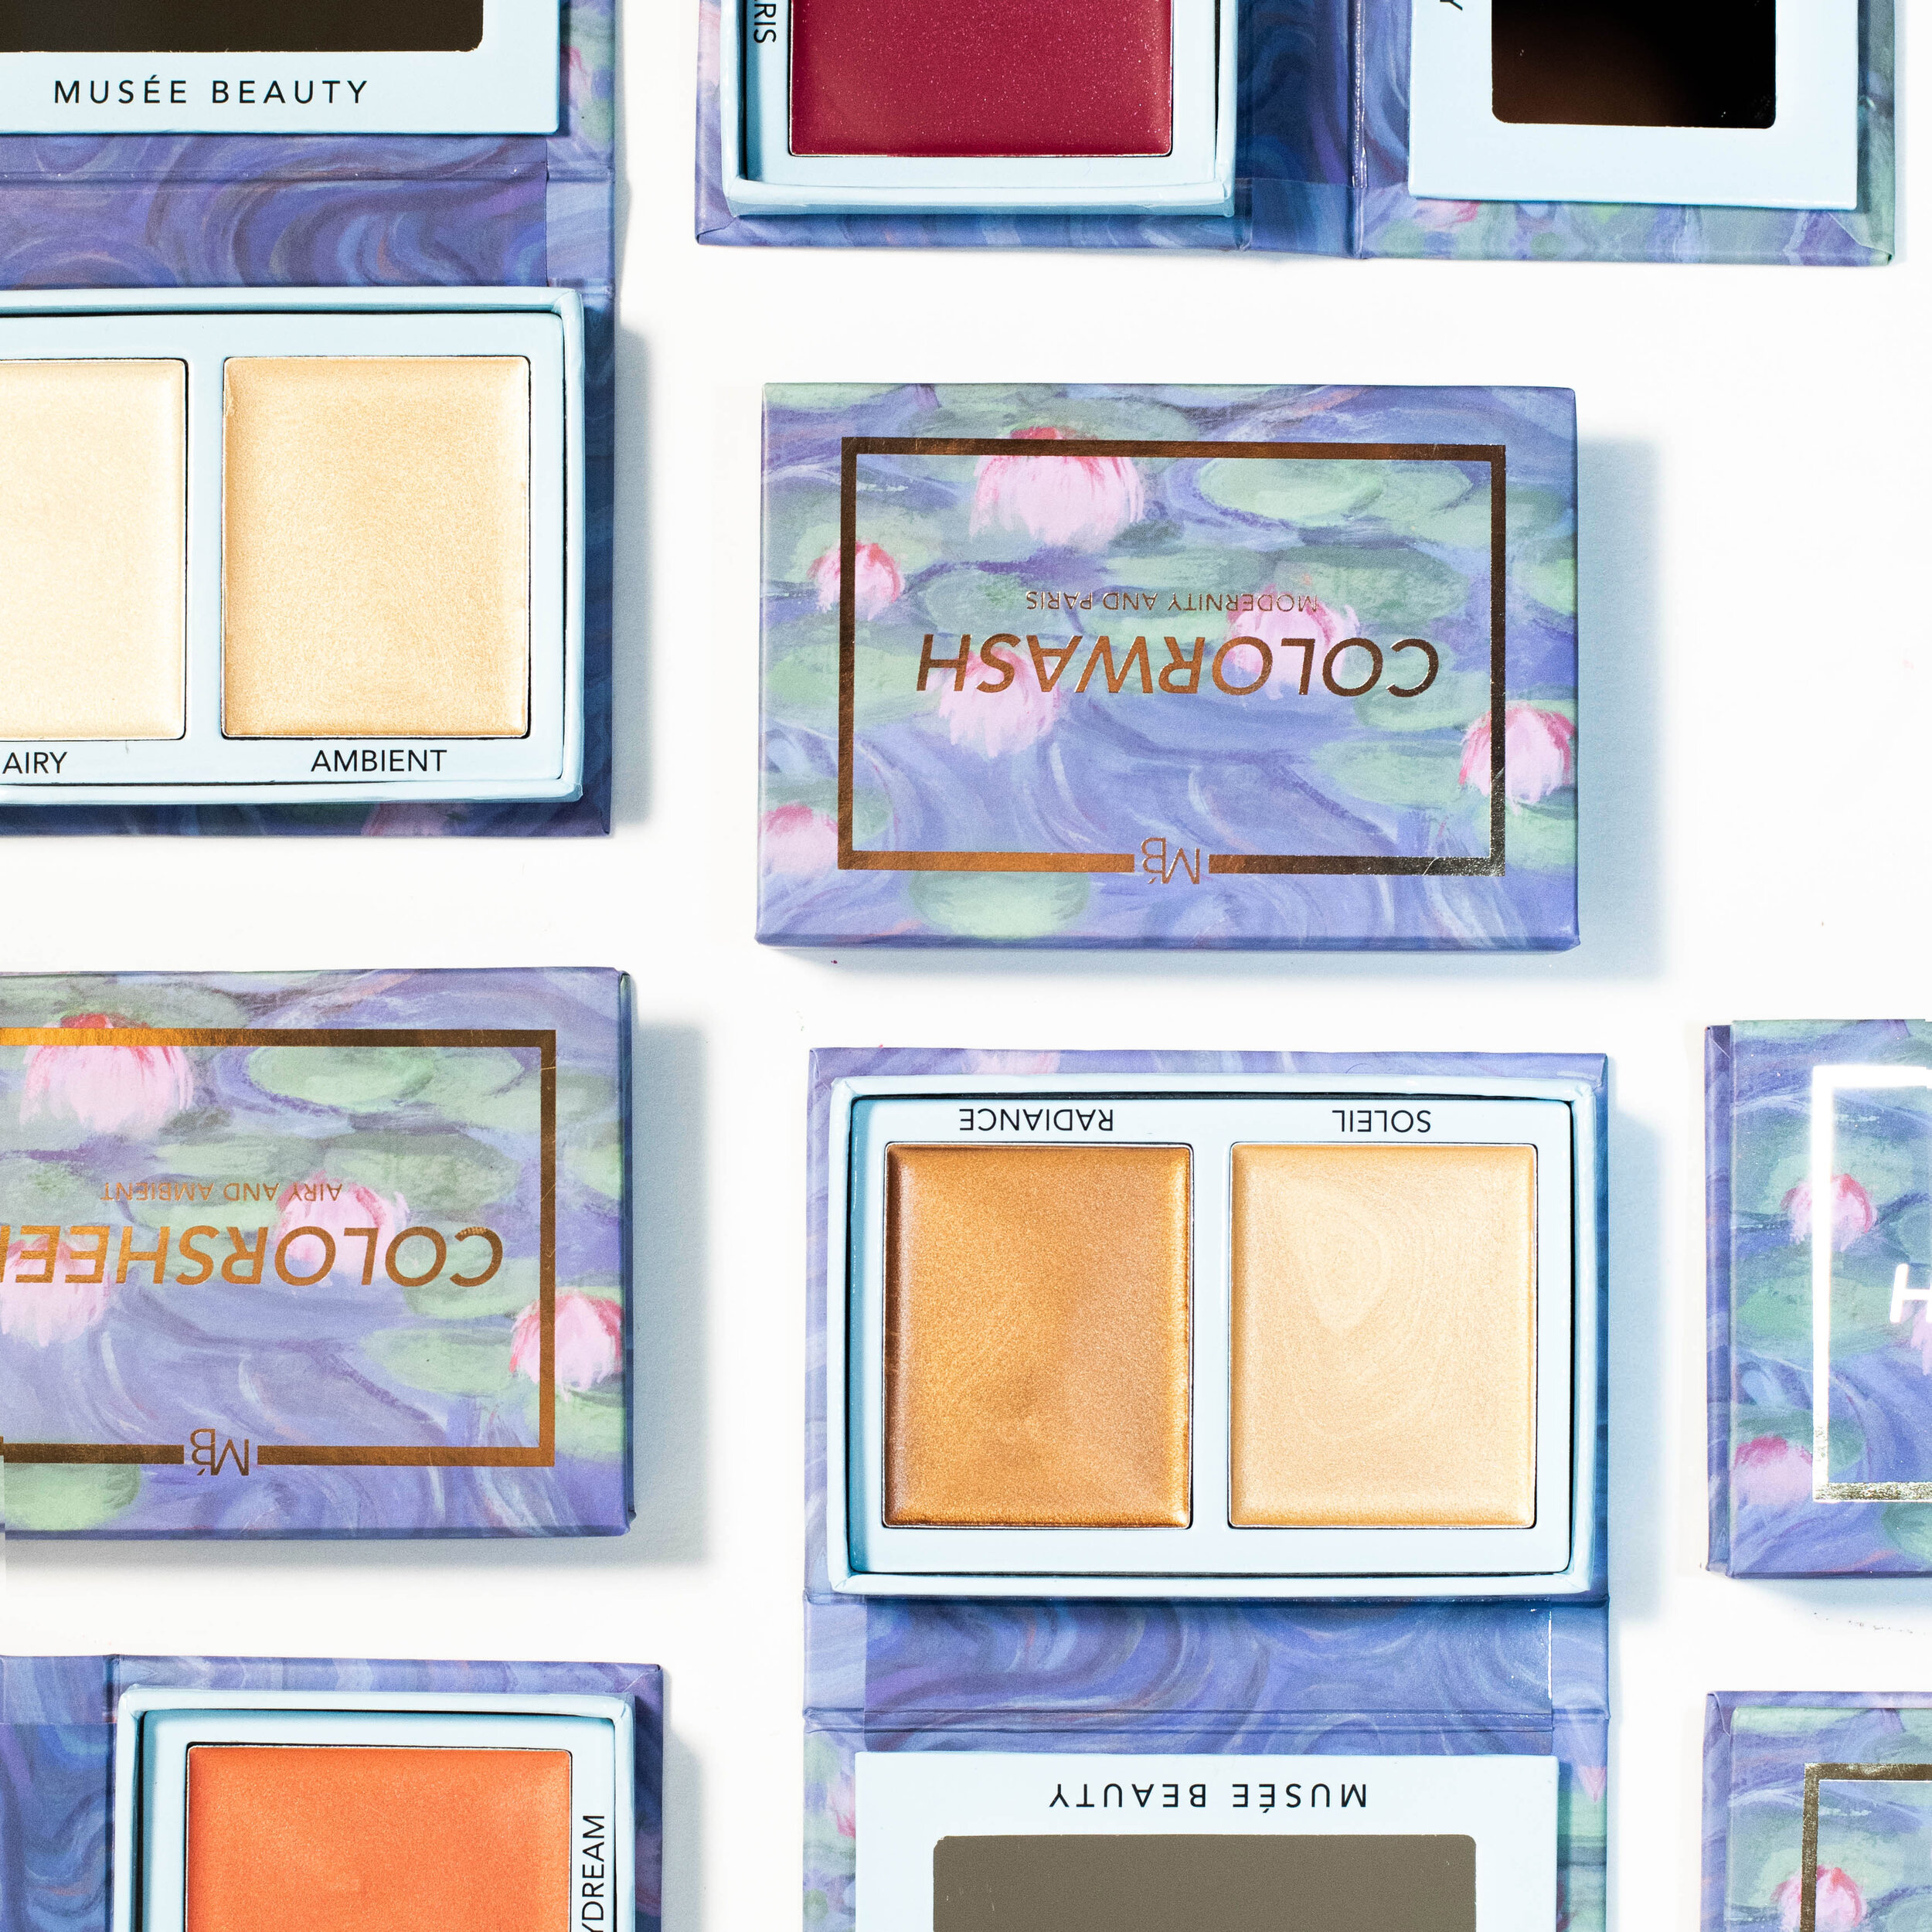 musee-beauty-ad-palette.jpg